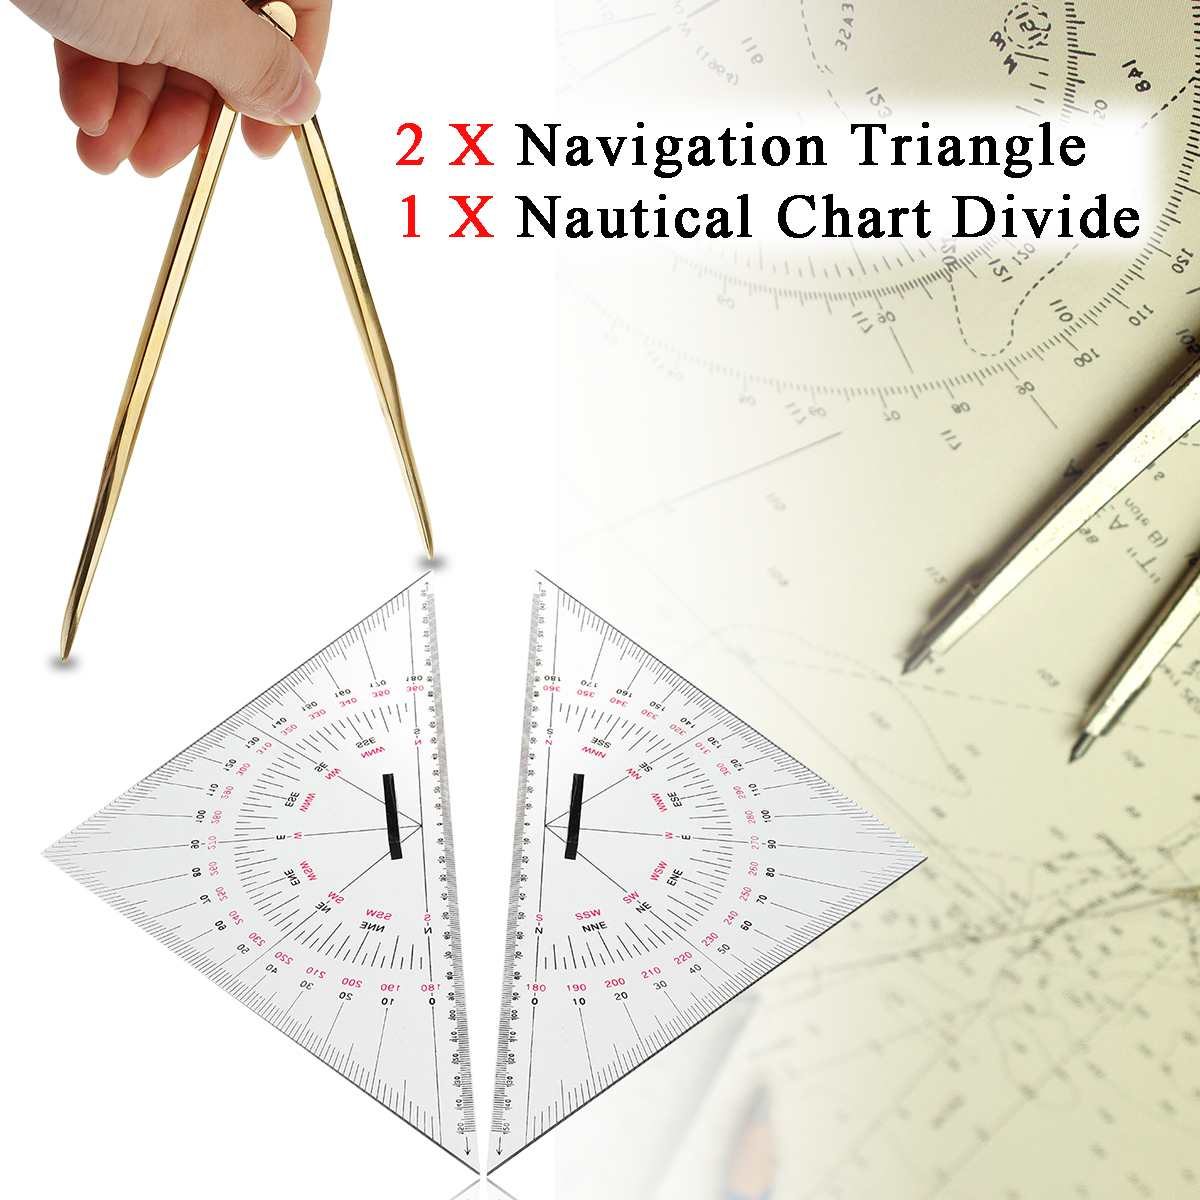 2Pcs 300mm Navigation Triangular Protractor + 1Pc 168mm Nautical Chart Divider Measurement Tools Suitable For Marine Navigation